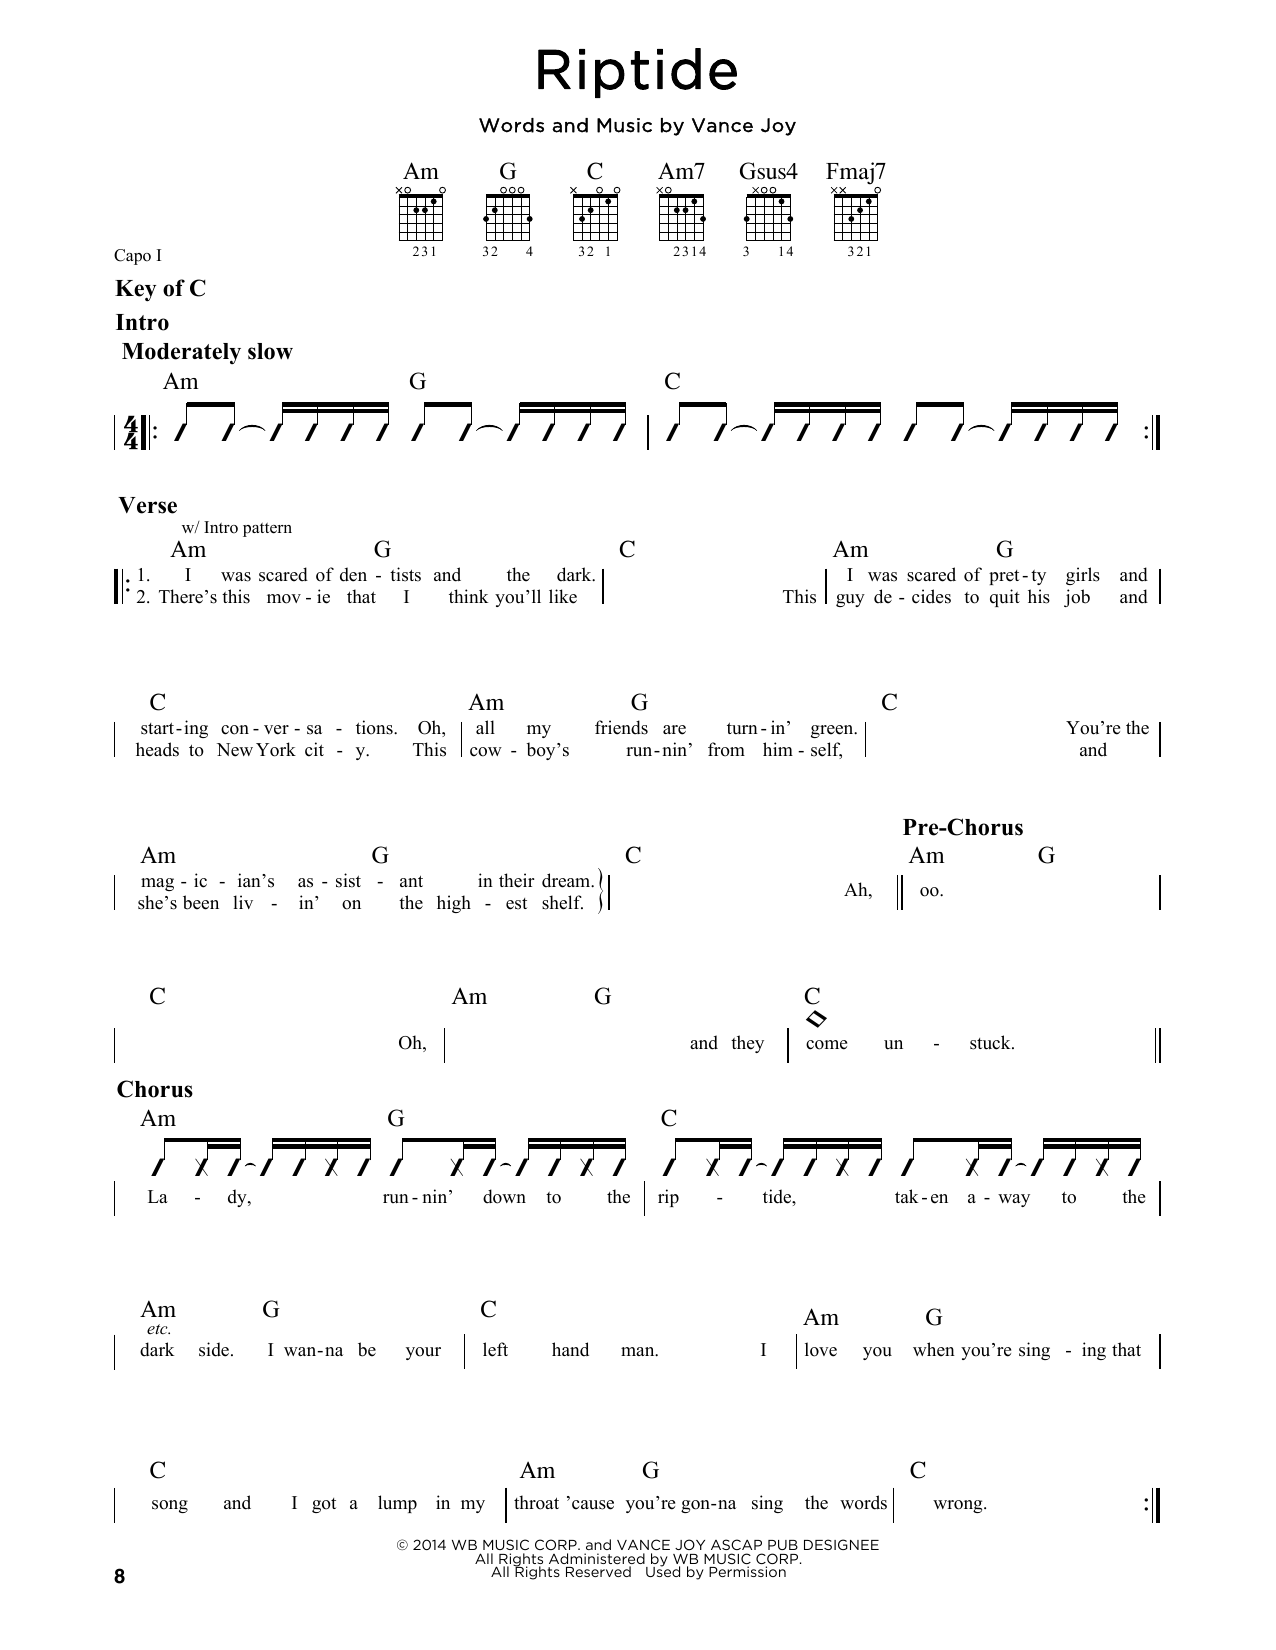 Riptide sheet music by Vance Joy (Guitar Lead Sheet u2013 162699)